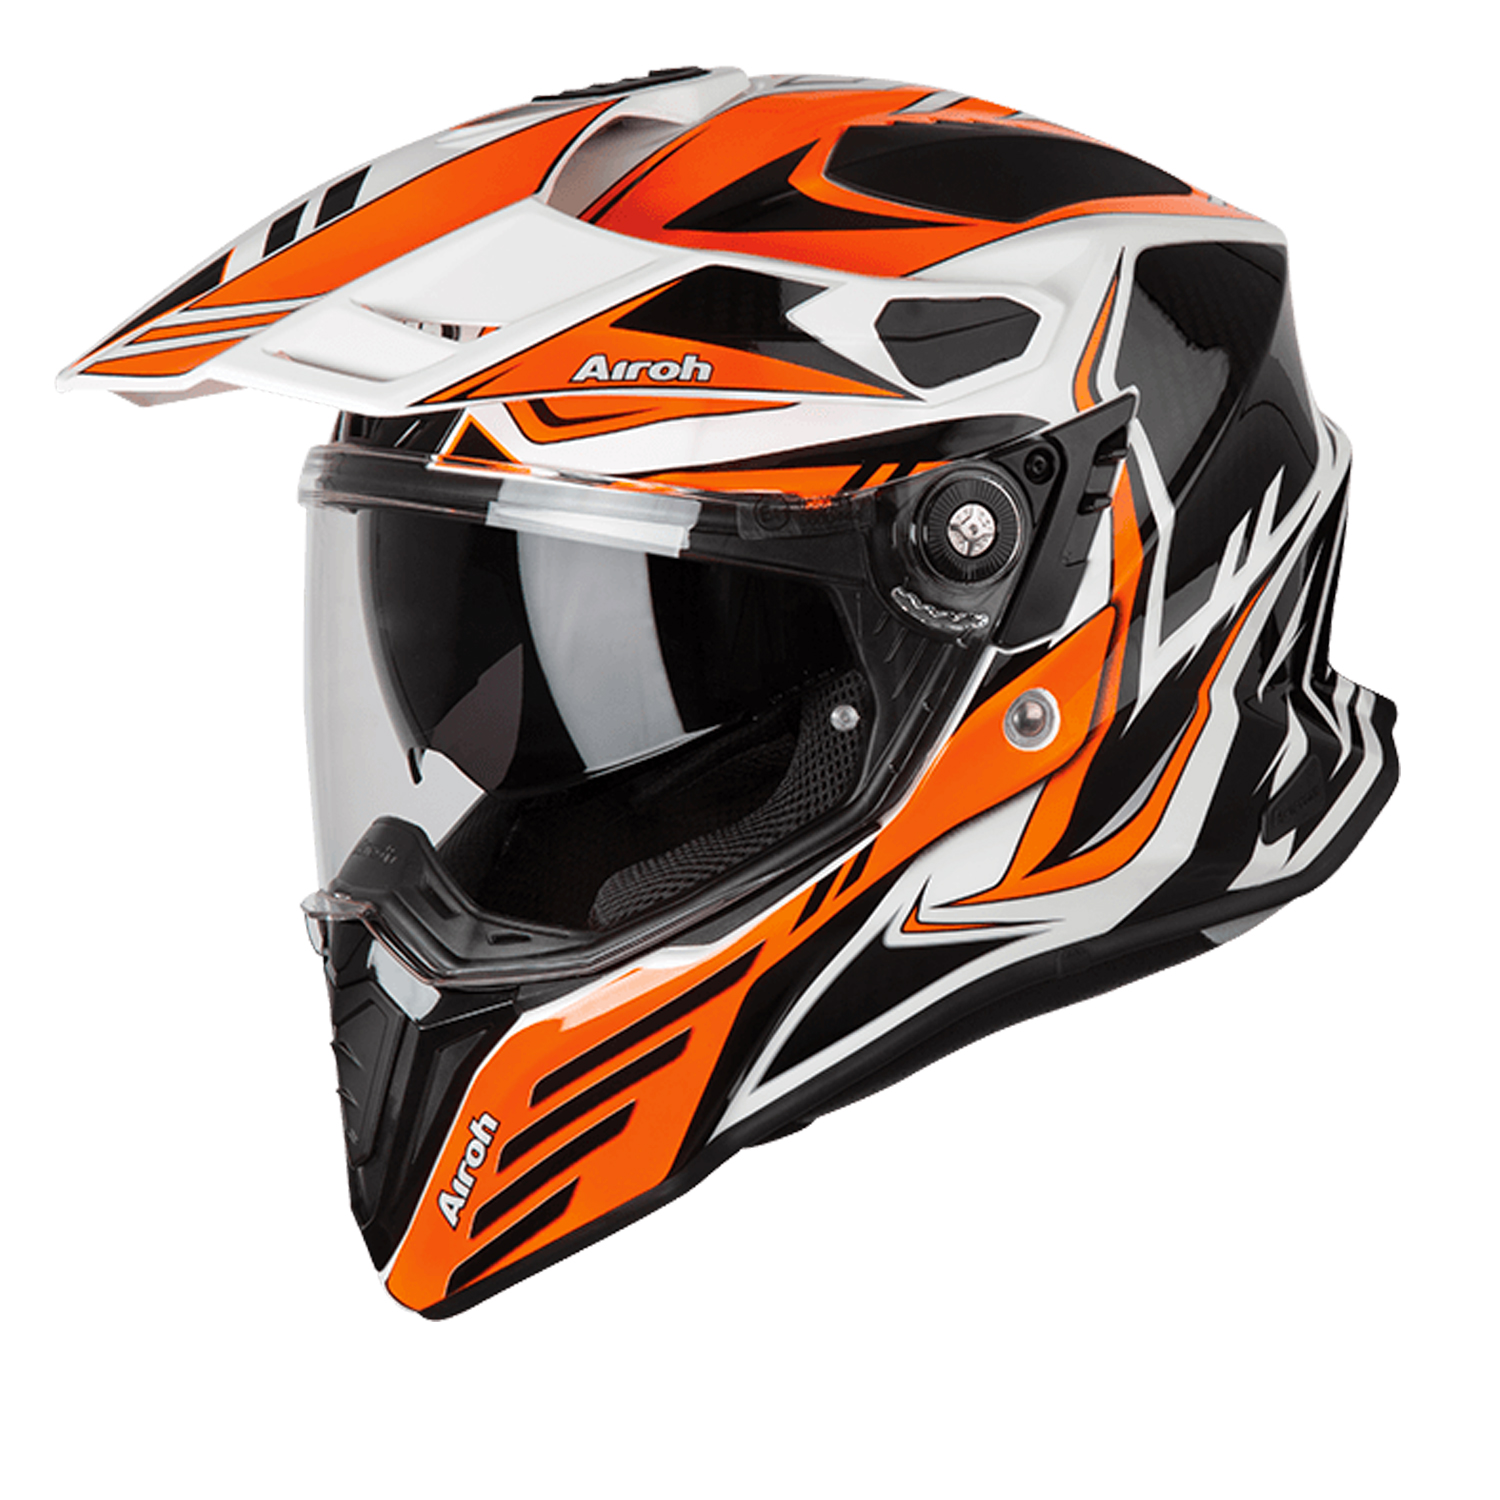 Casco helmet Airoh Full Face Integrale Commander Carbon Orange Gloss Enduro Tour